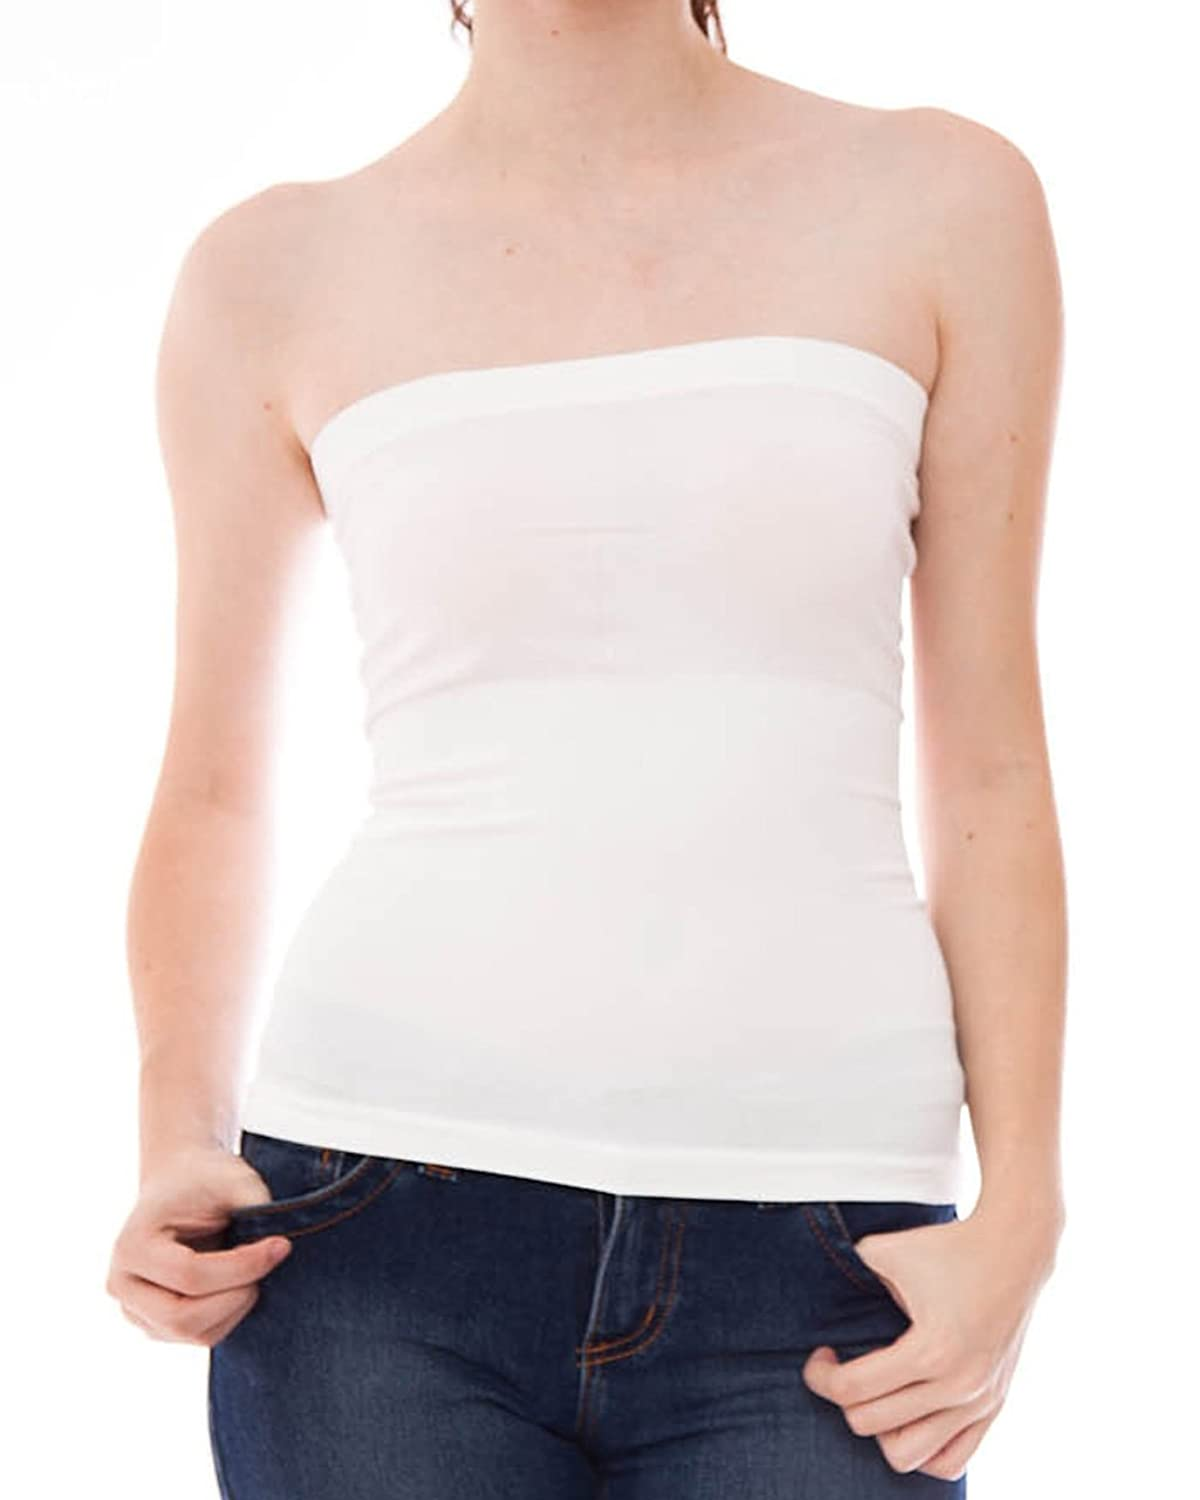 da59b8c6fd Hollywood Star Fashion Women s Plain Stretch Seamless Strapless Layer Tube  Top well-wreapped